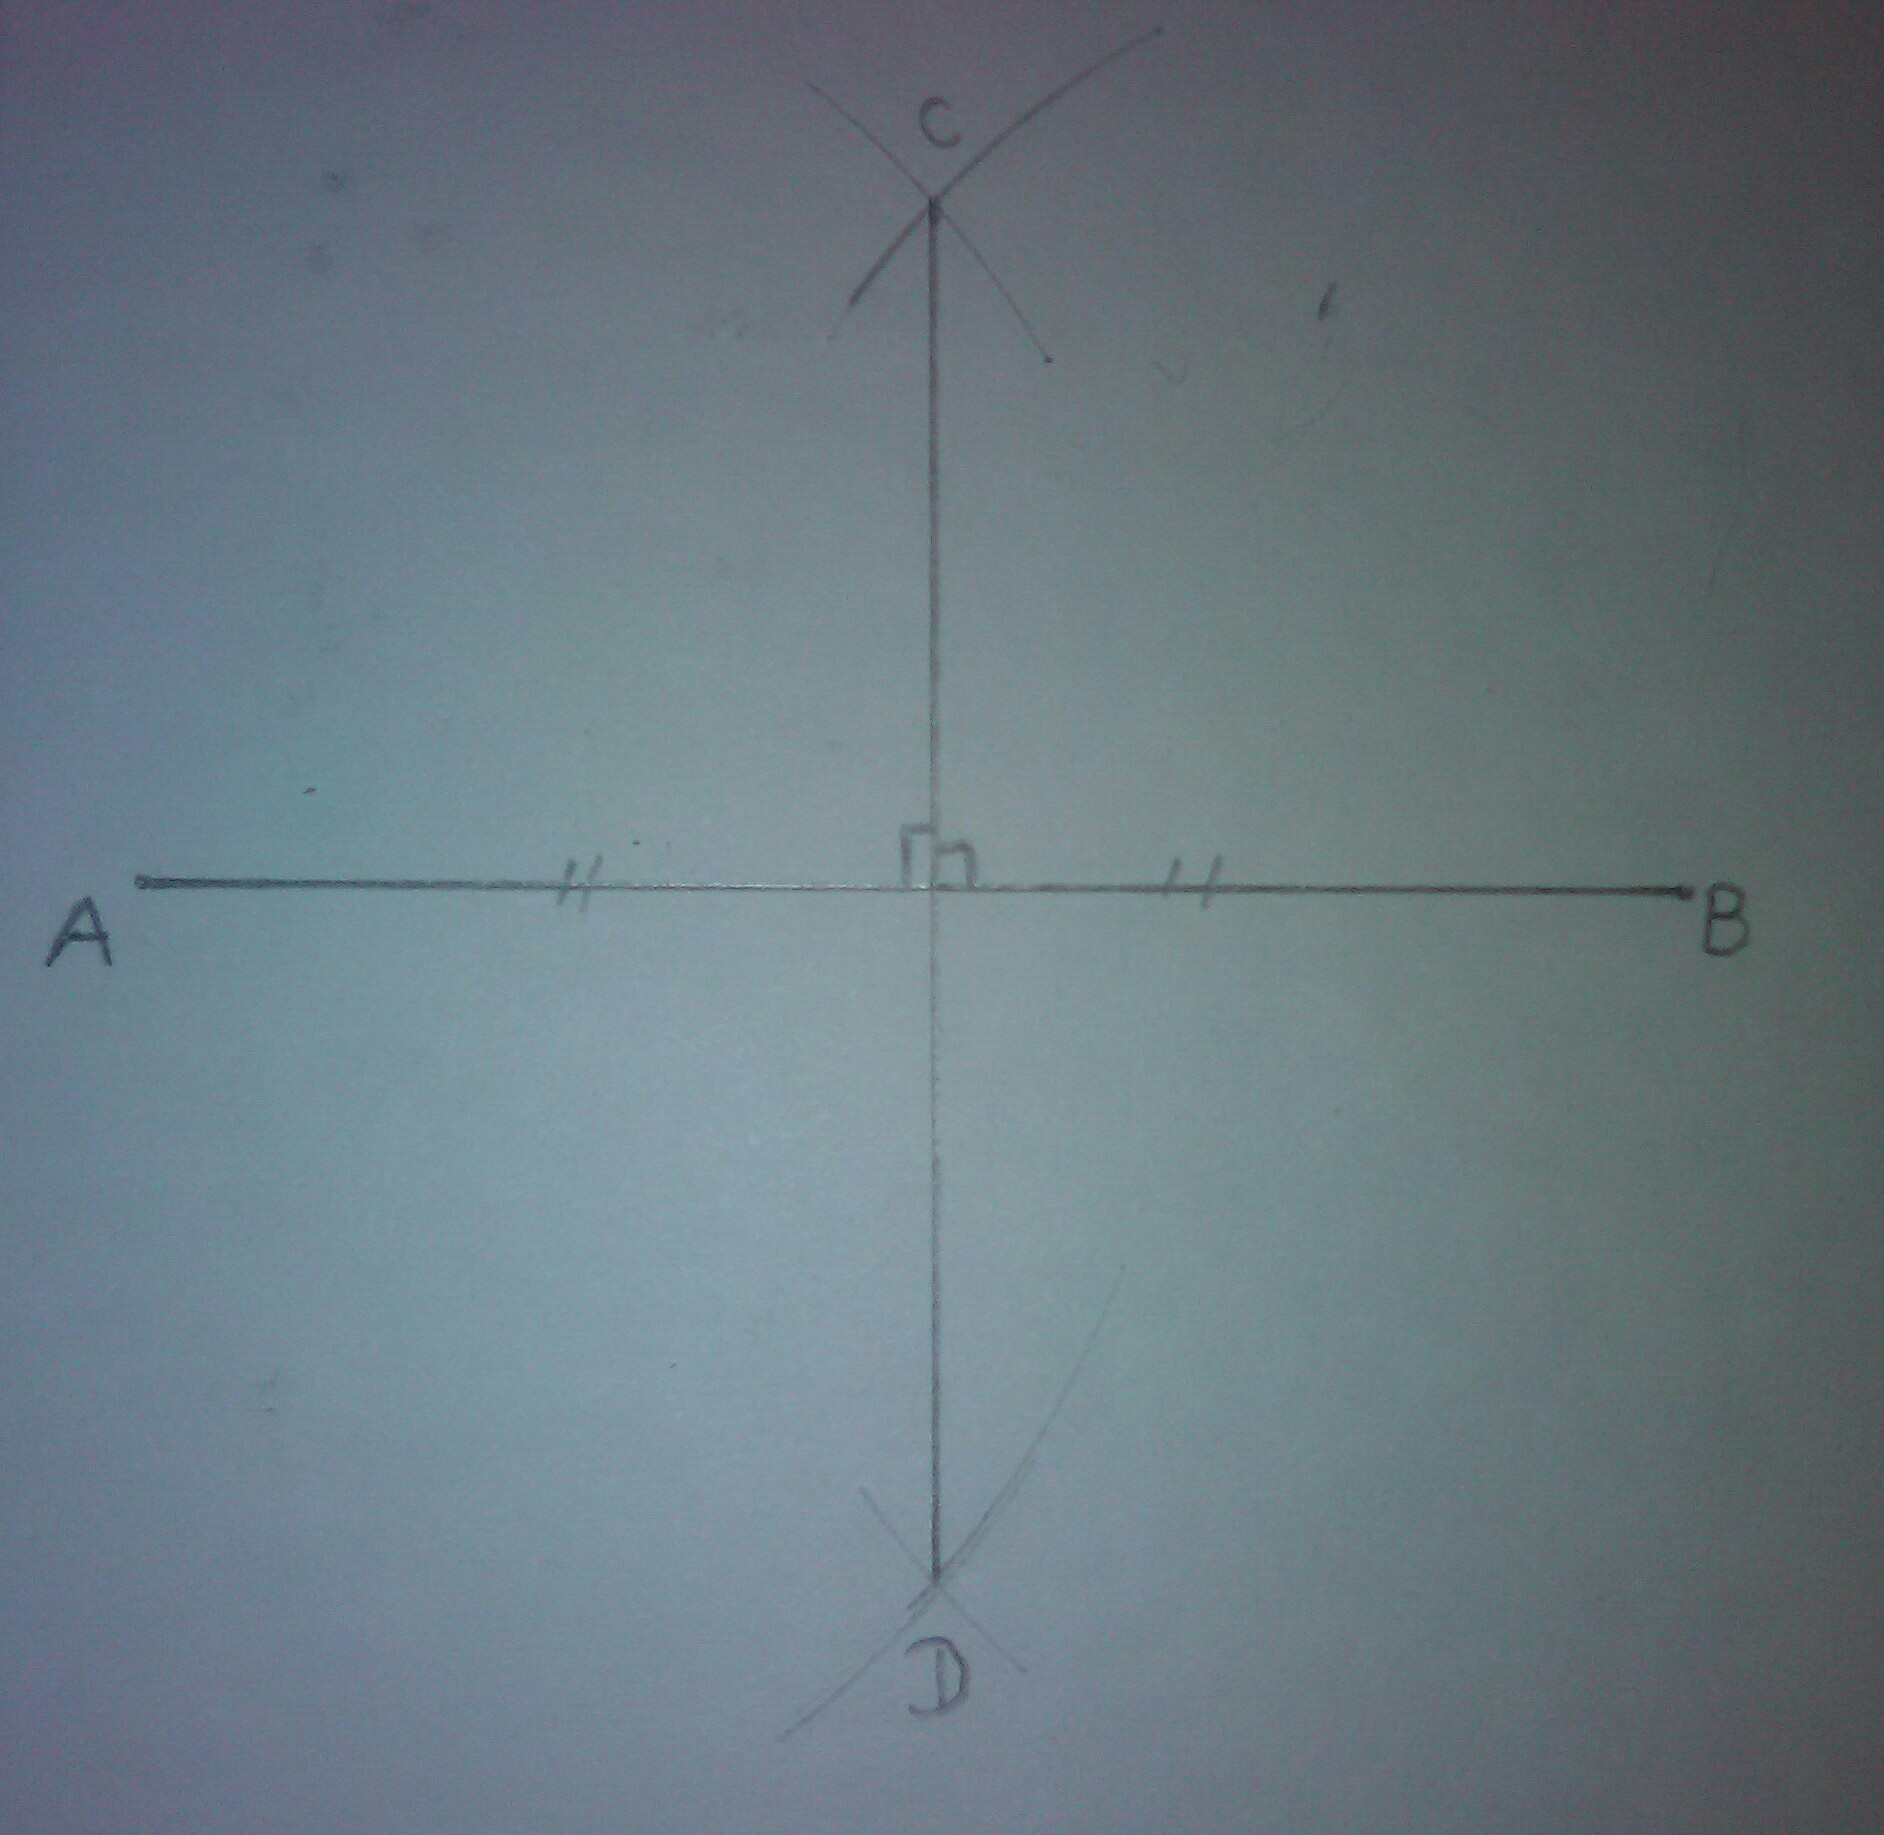 Draw A Line Segment Of Length 9 5 Cm And Construct Its Perpendicular